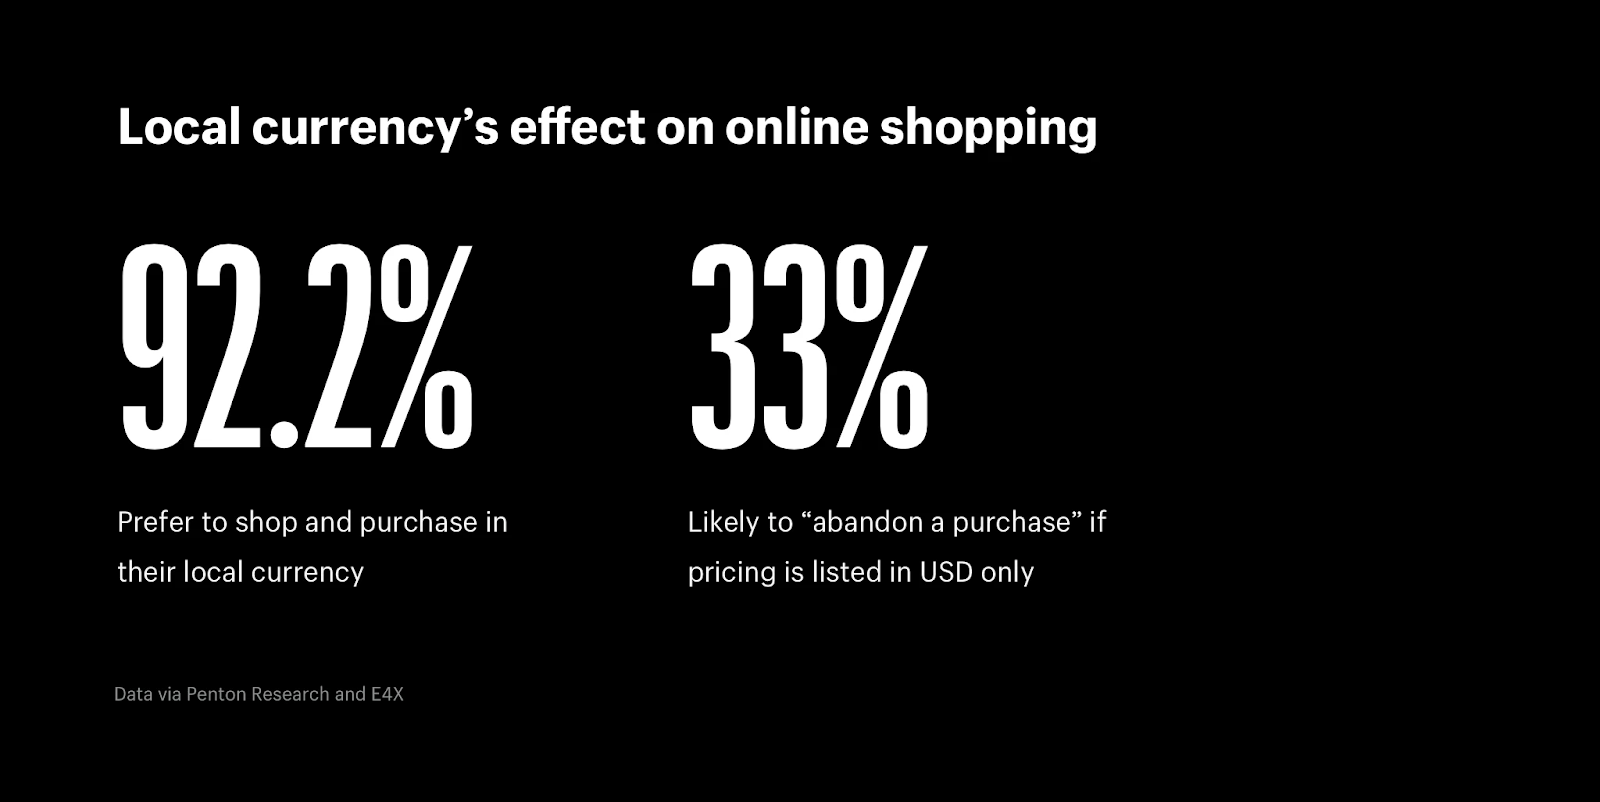 Local currency has an effect on online shopping